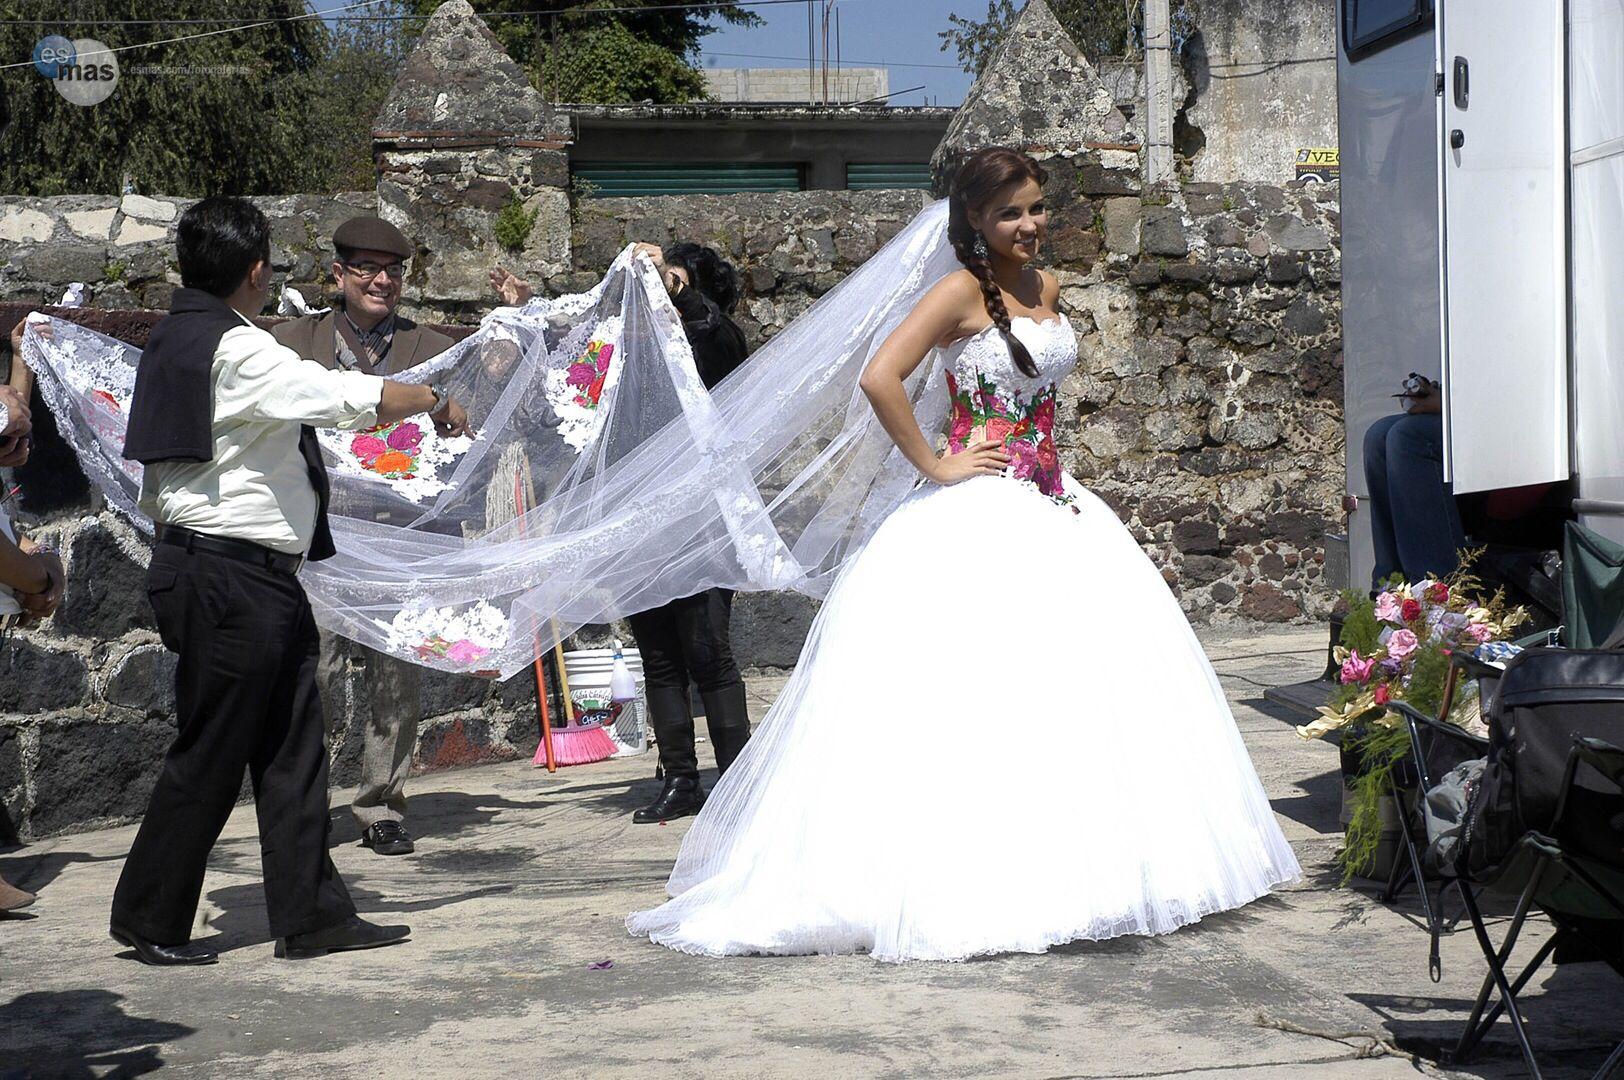 embroidered wedding dress from the mexican novela mi